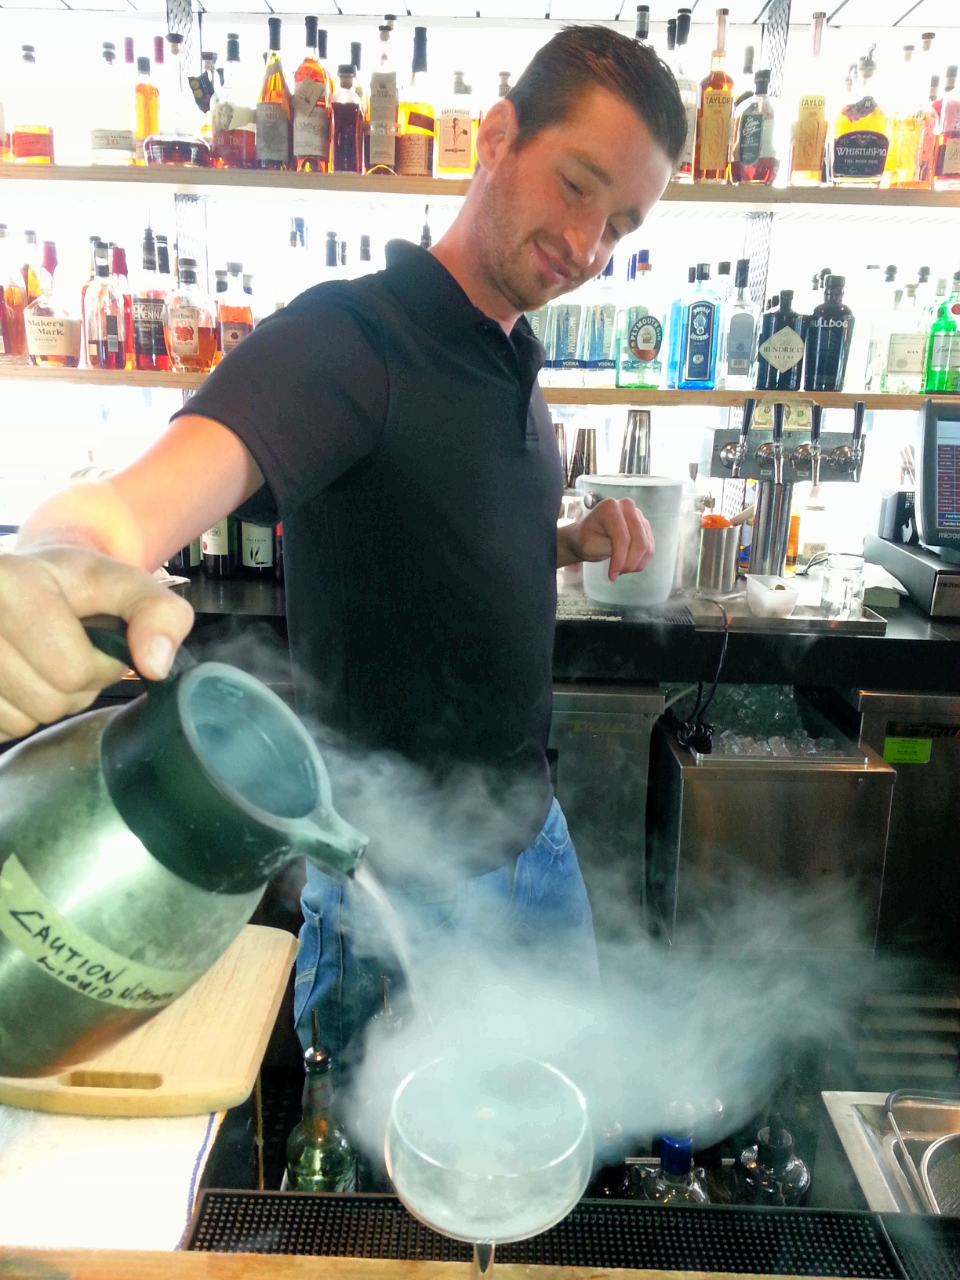 Beverage manager John Buckhalt uses liquid nitrogen to ensure a frosty glass / photo credit: Michael Mackie